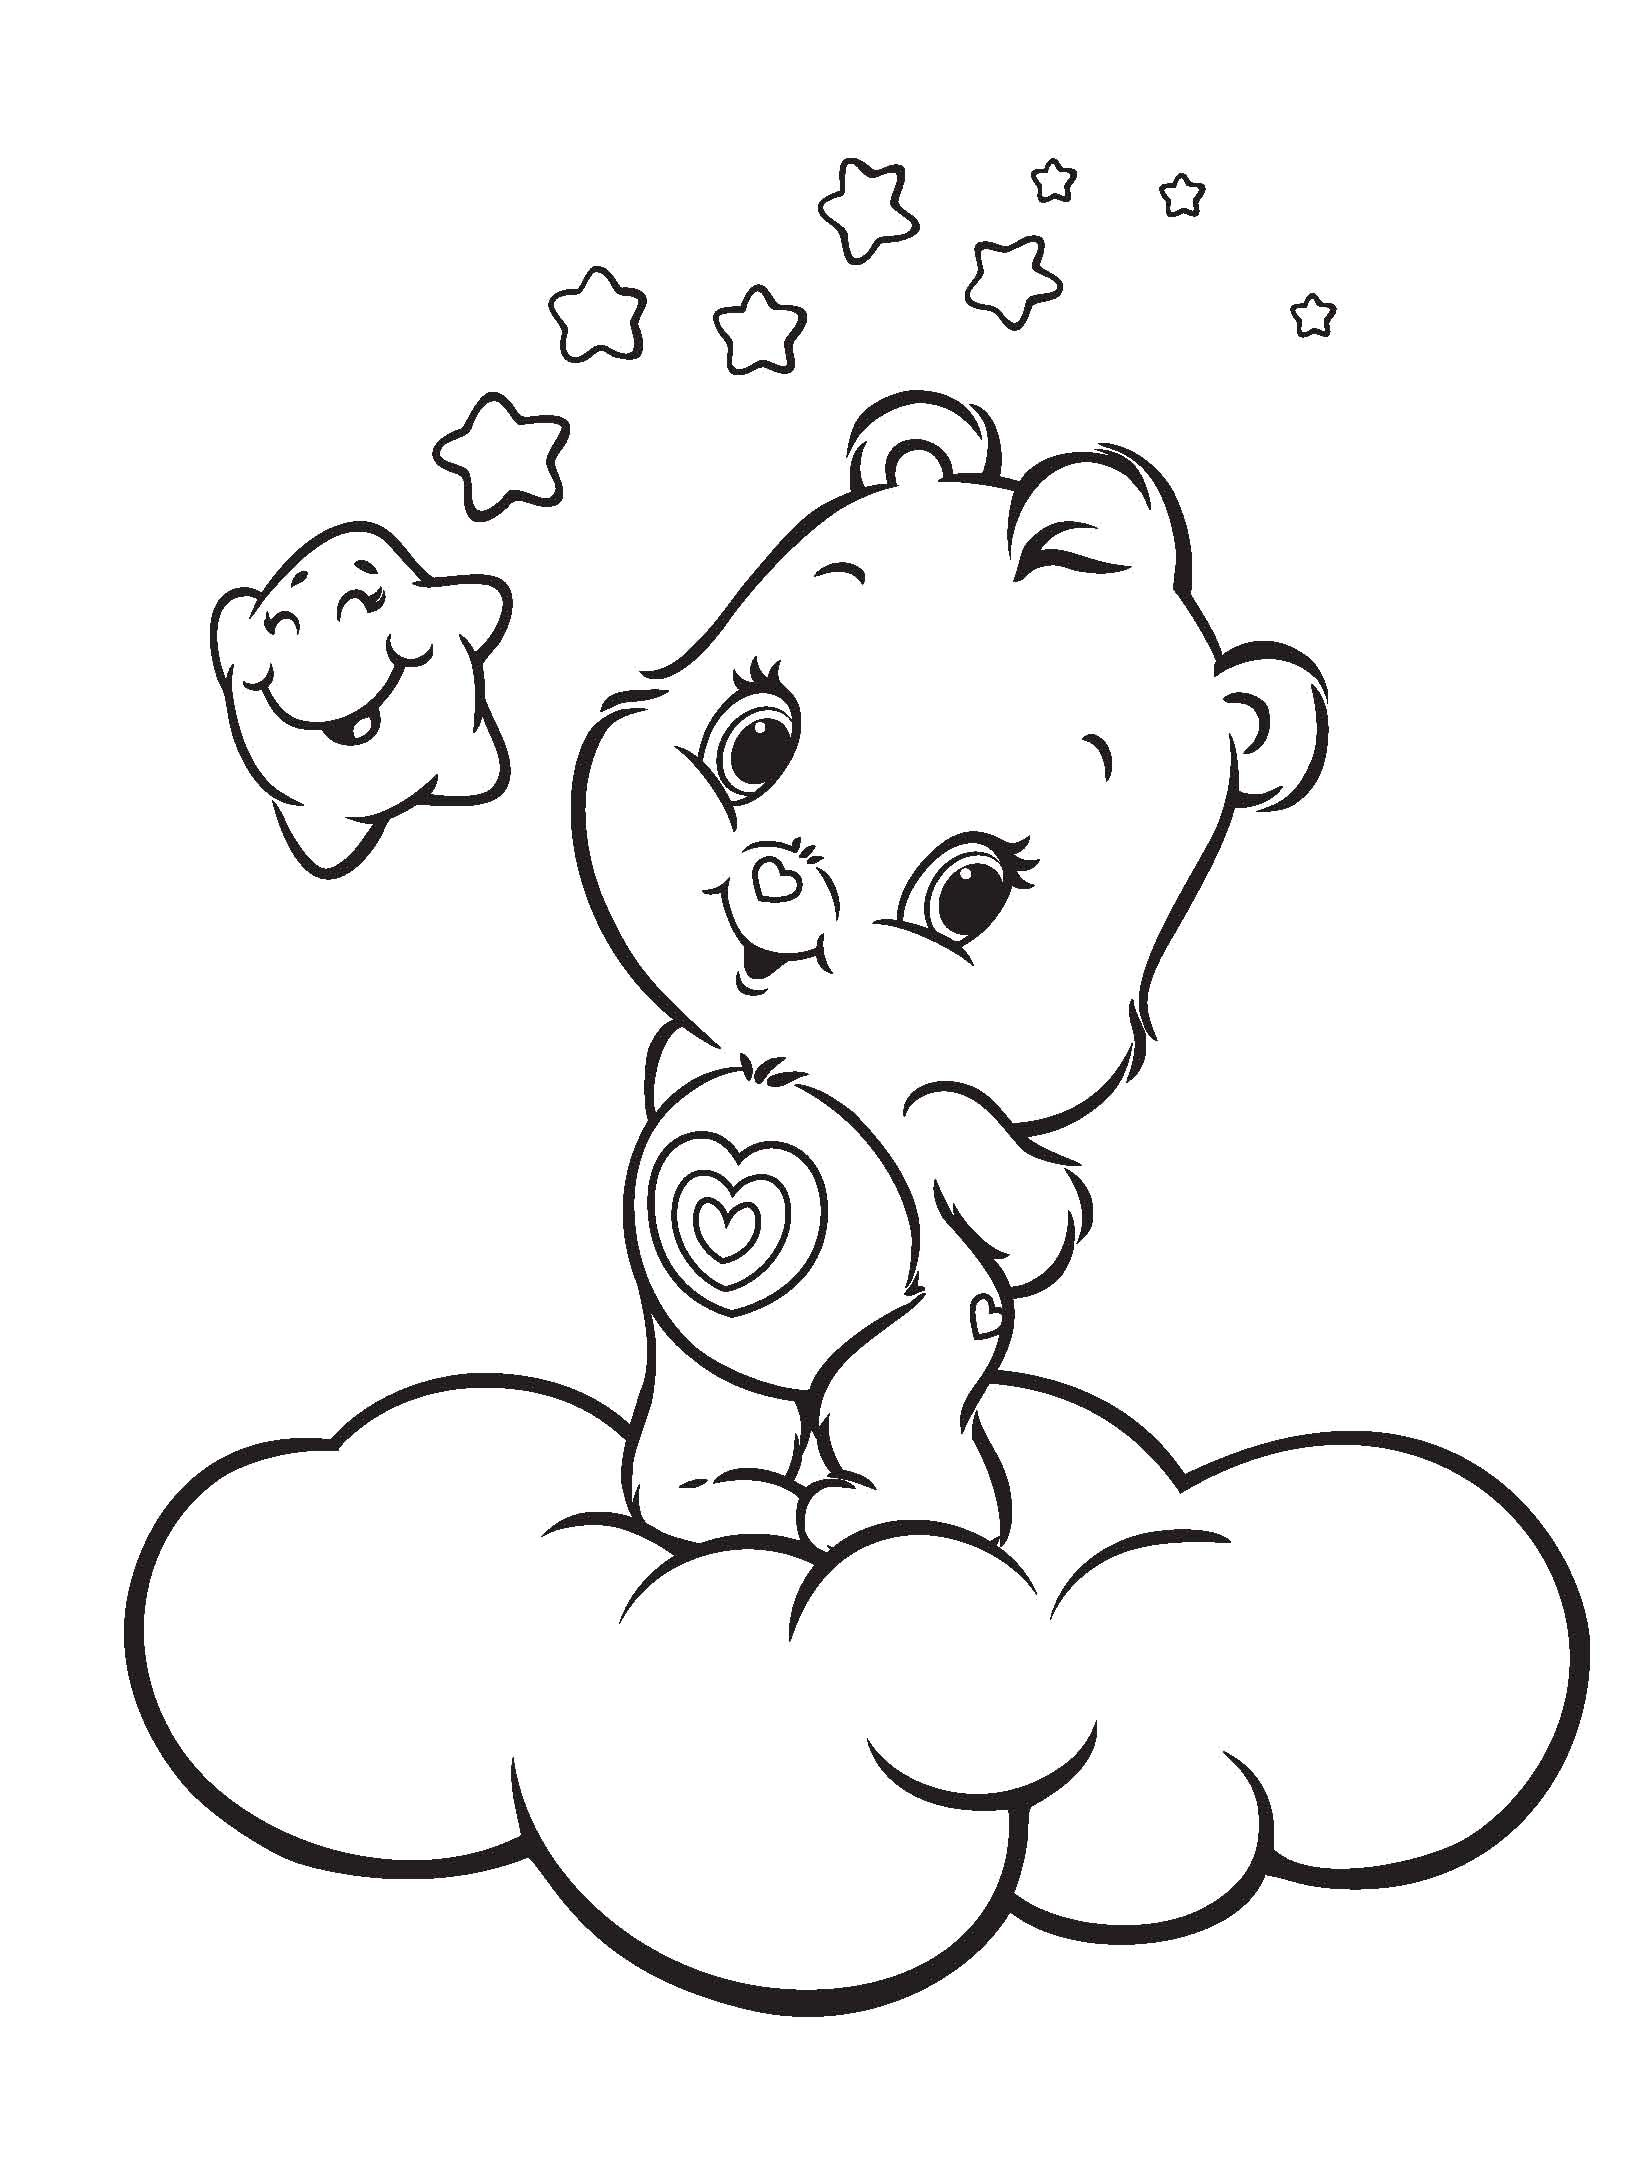 Baby Care Bears Coloring Pages Kids | Coloring | Pinterest | Care ...